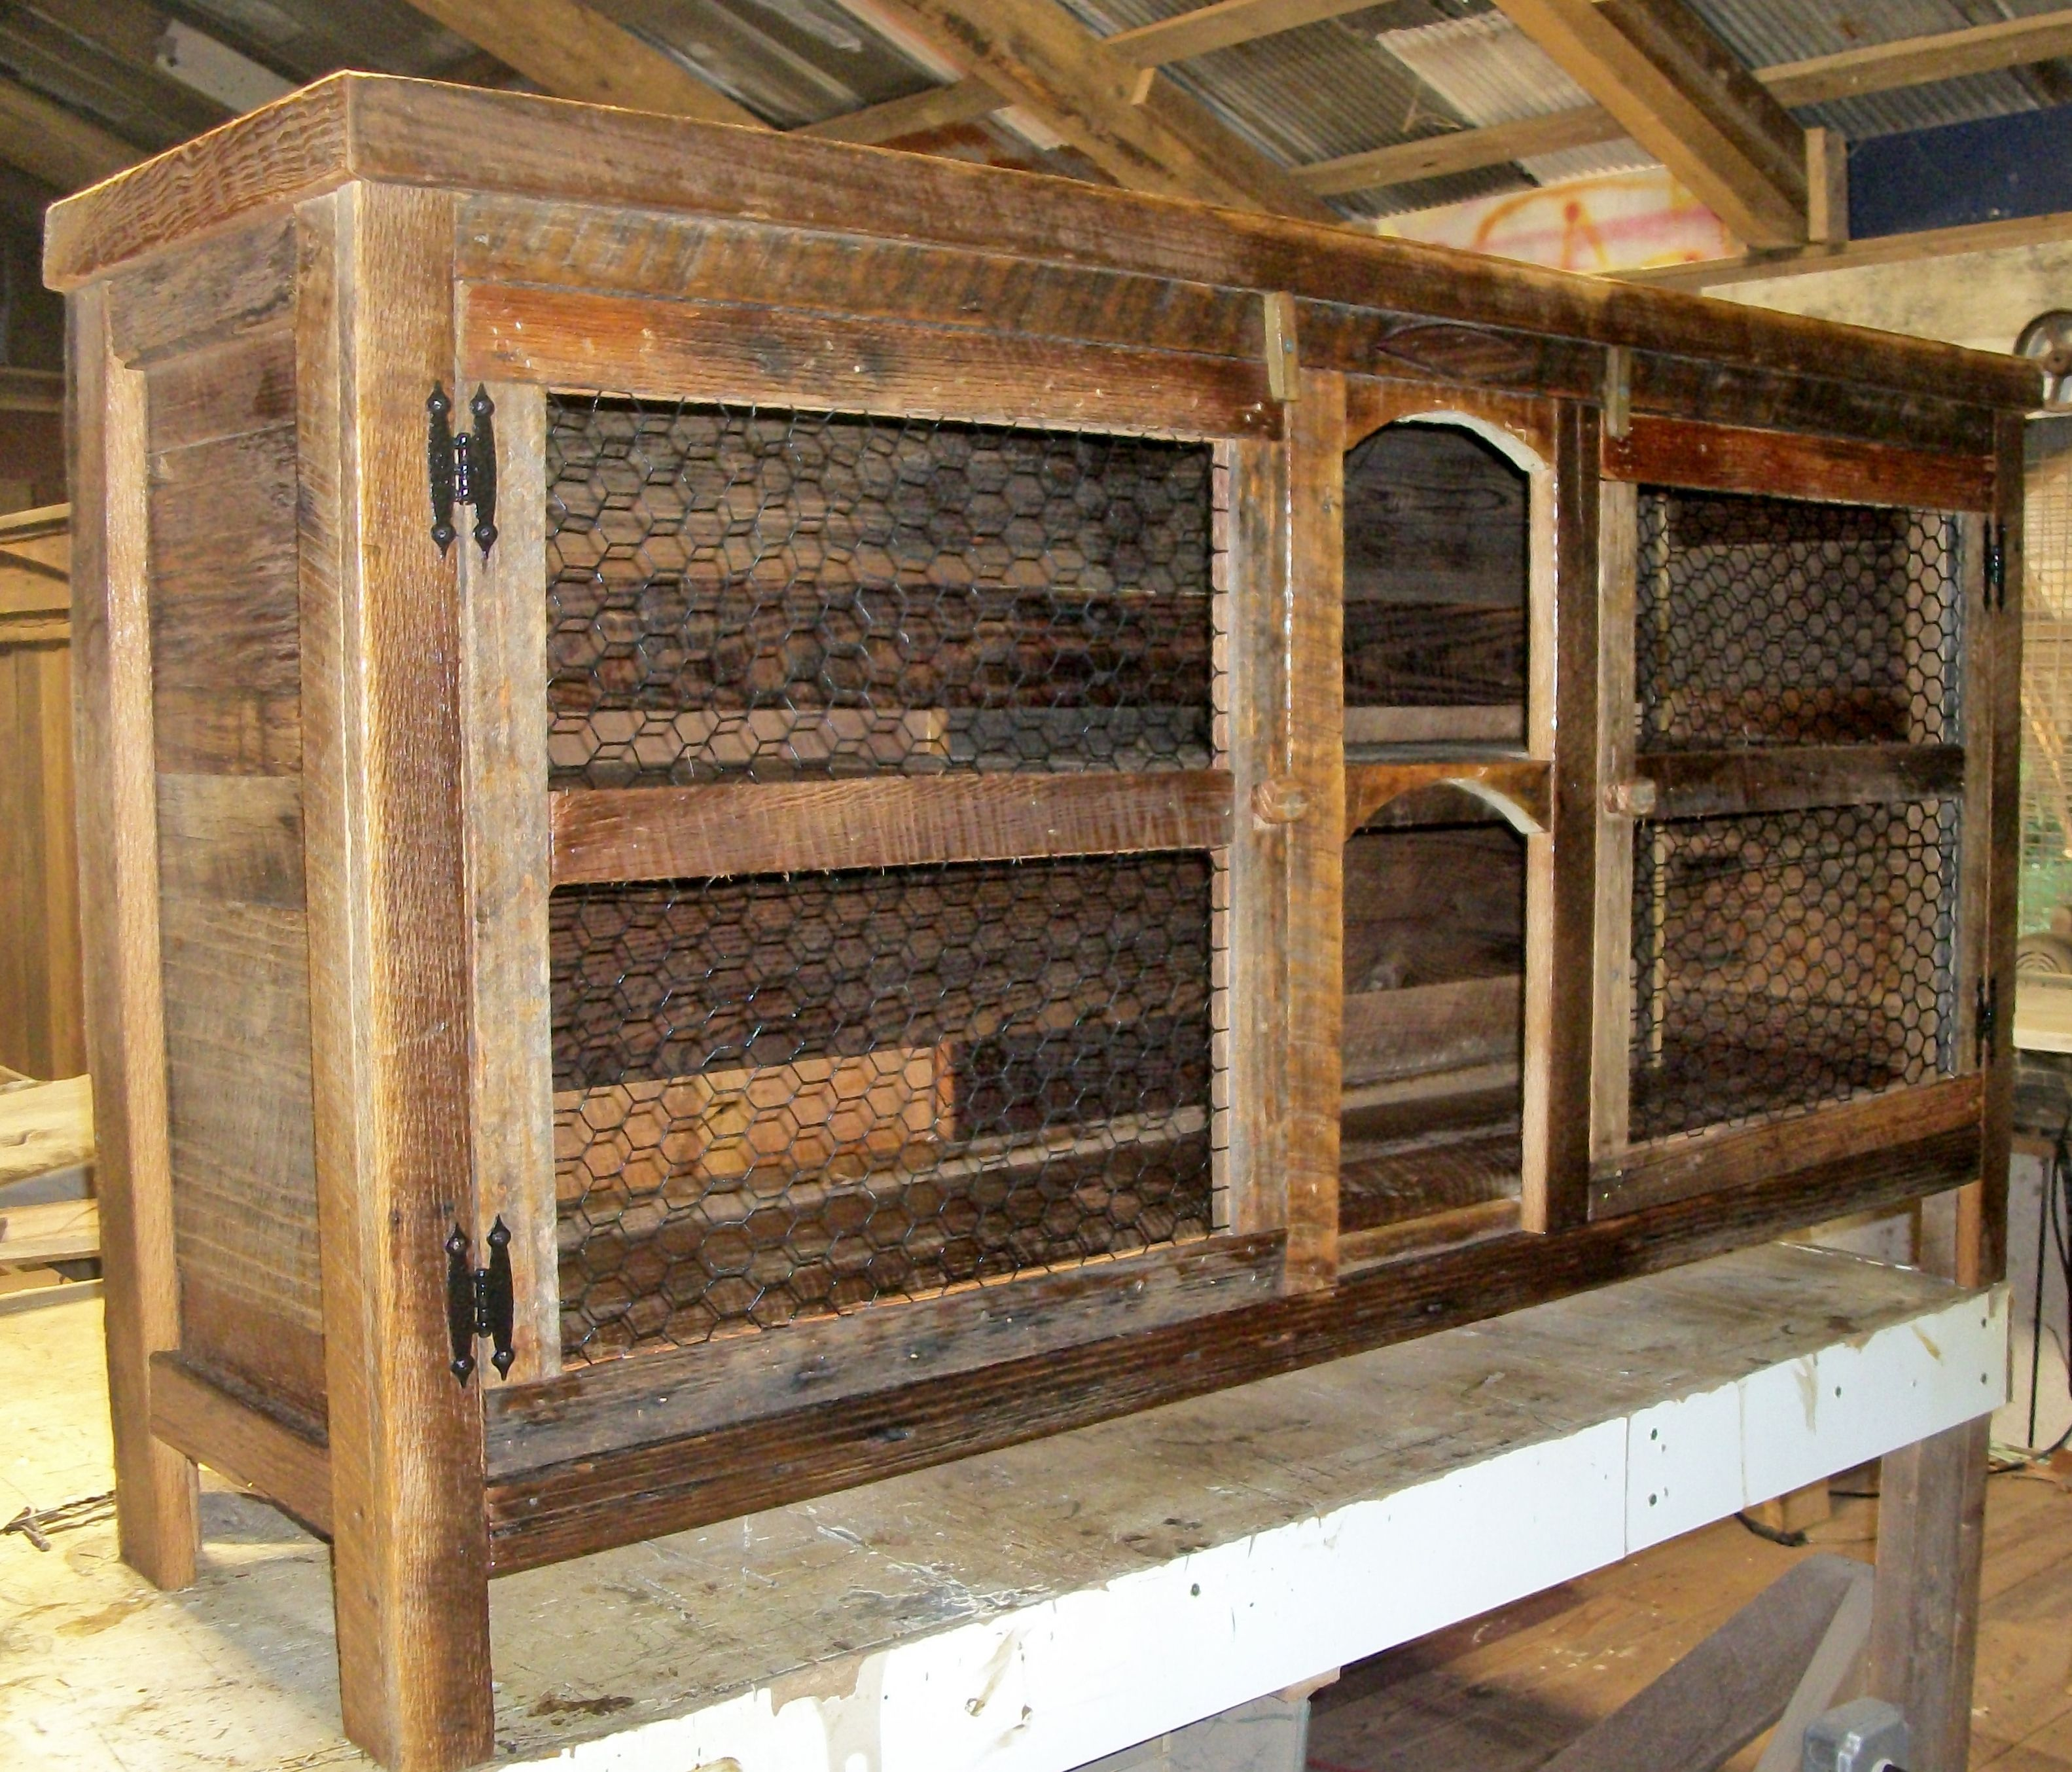 Barn wood furniture - Entertainment Center Made With Barn Wood And Some Chicken Wire